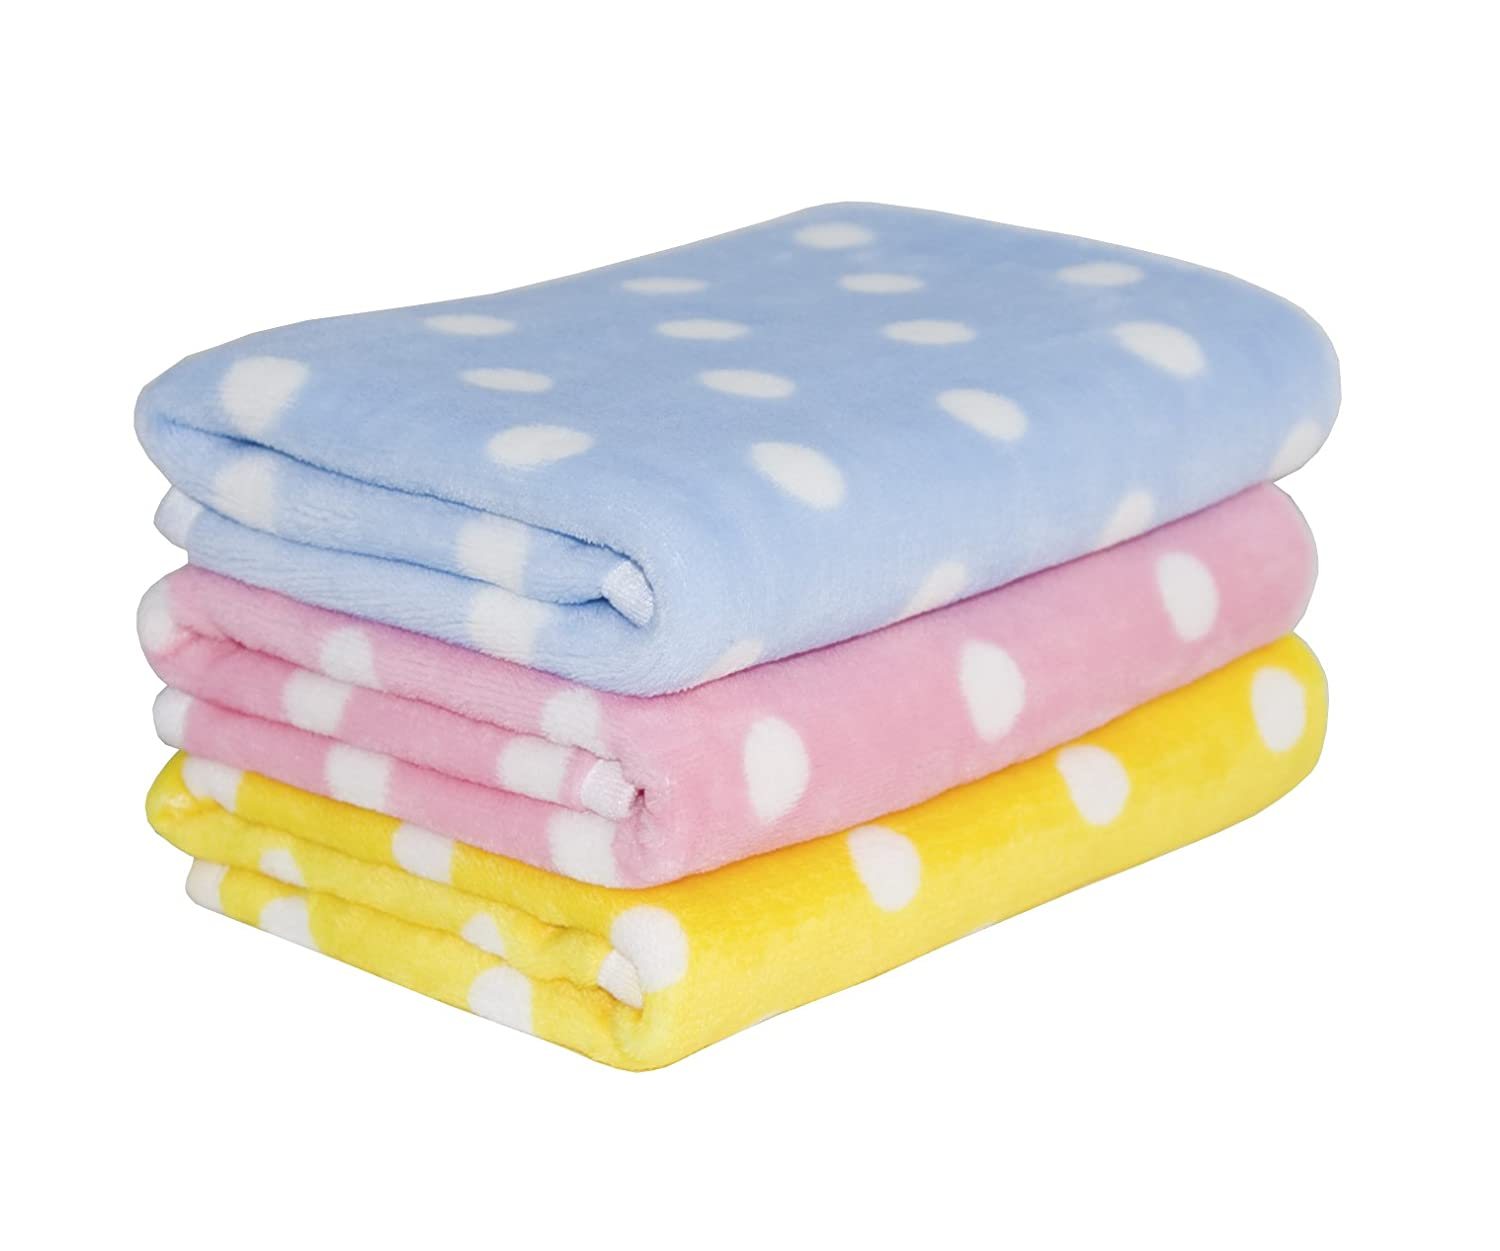 3 Pack 3 Colors Fleece Pet Dog Blanket & Lovely Baby Best Puppy Blanket for Car,Couch,Bed & Cat soft,Lightweight, Breathable Blankets